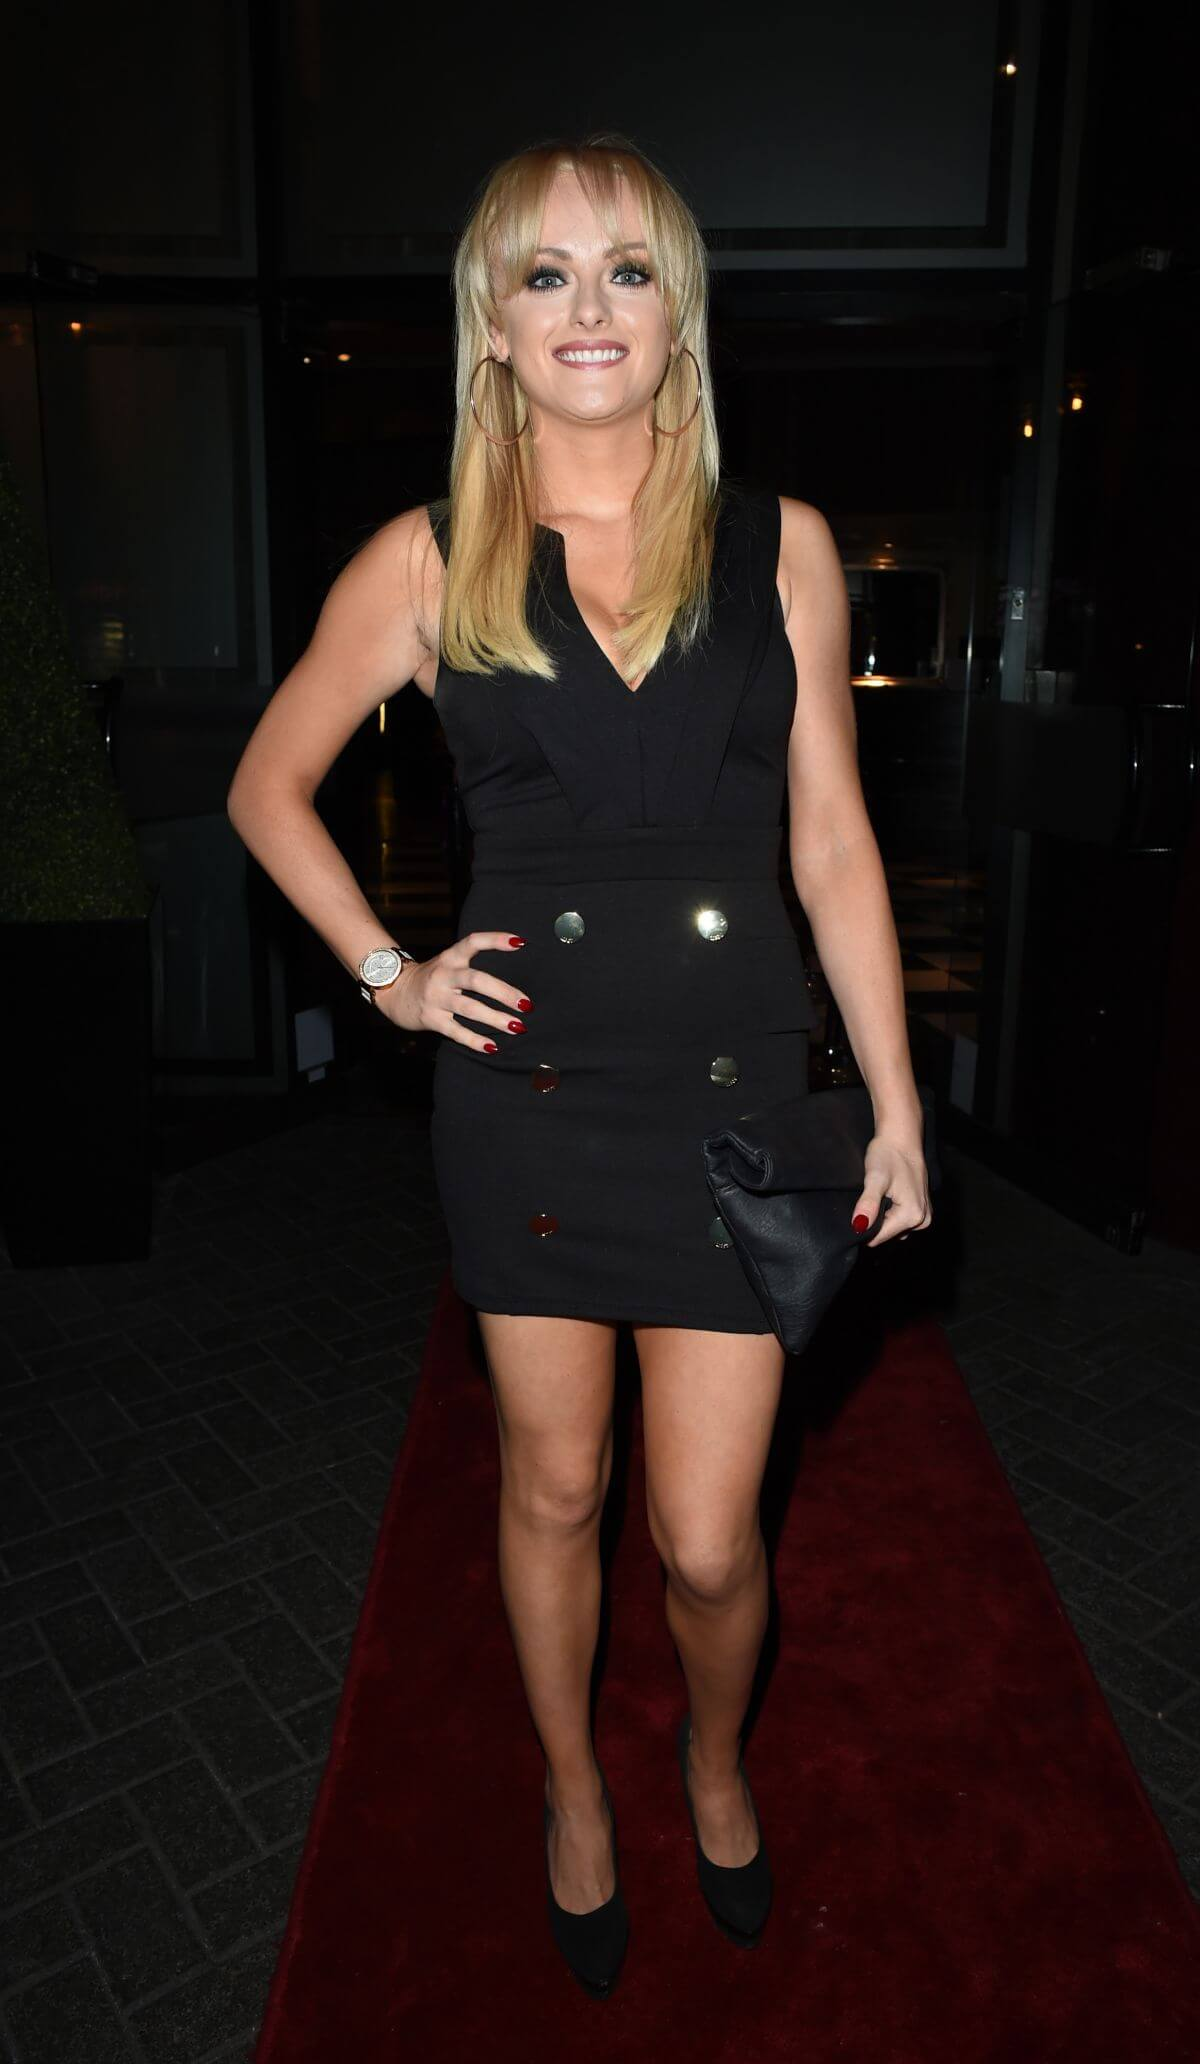 Katie McGlynn at Mal Maison Events Rooms Launch Party in Manchester